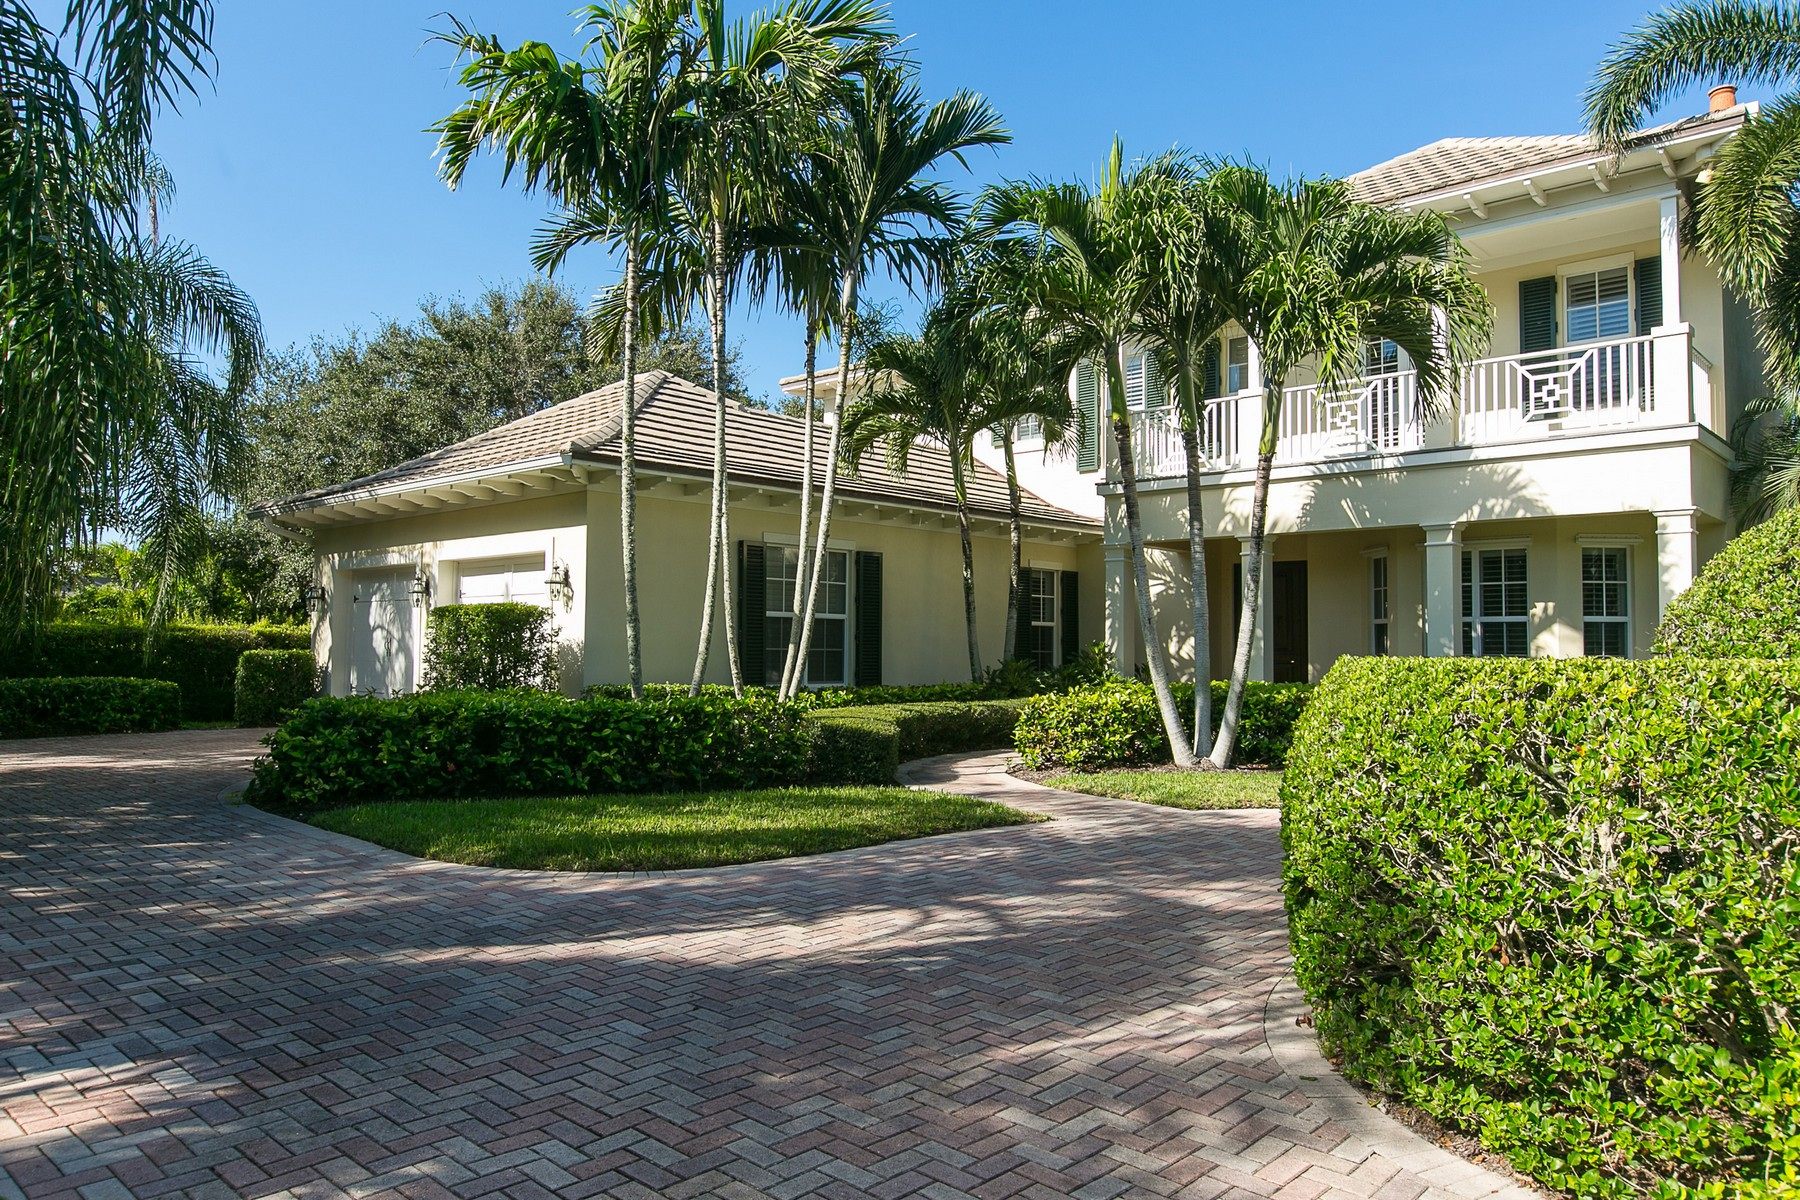 Einfamilienhaus für Verkauf beim Luxurious home in Palm Isle Plantation 212 Coconut Creek Court Indian River Shores, Florida 32963 Vereinigte Staaten